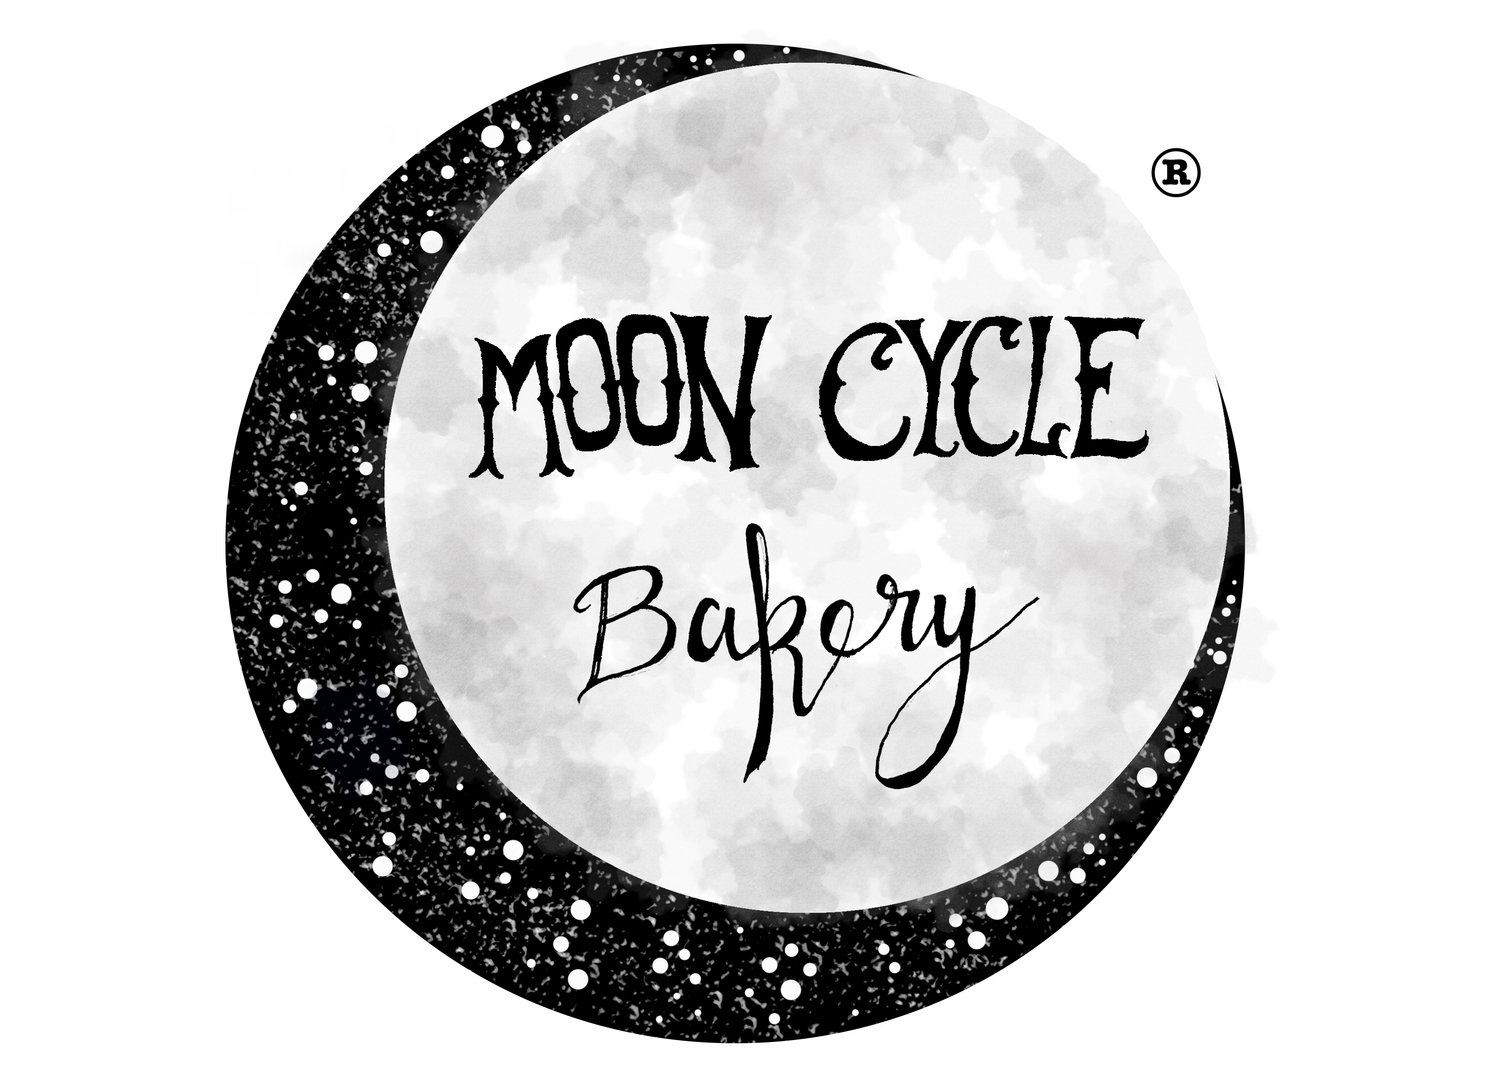 How a plant based diet self care helped heal endometriosis with moon cycle bakery forumfinder Image collections